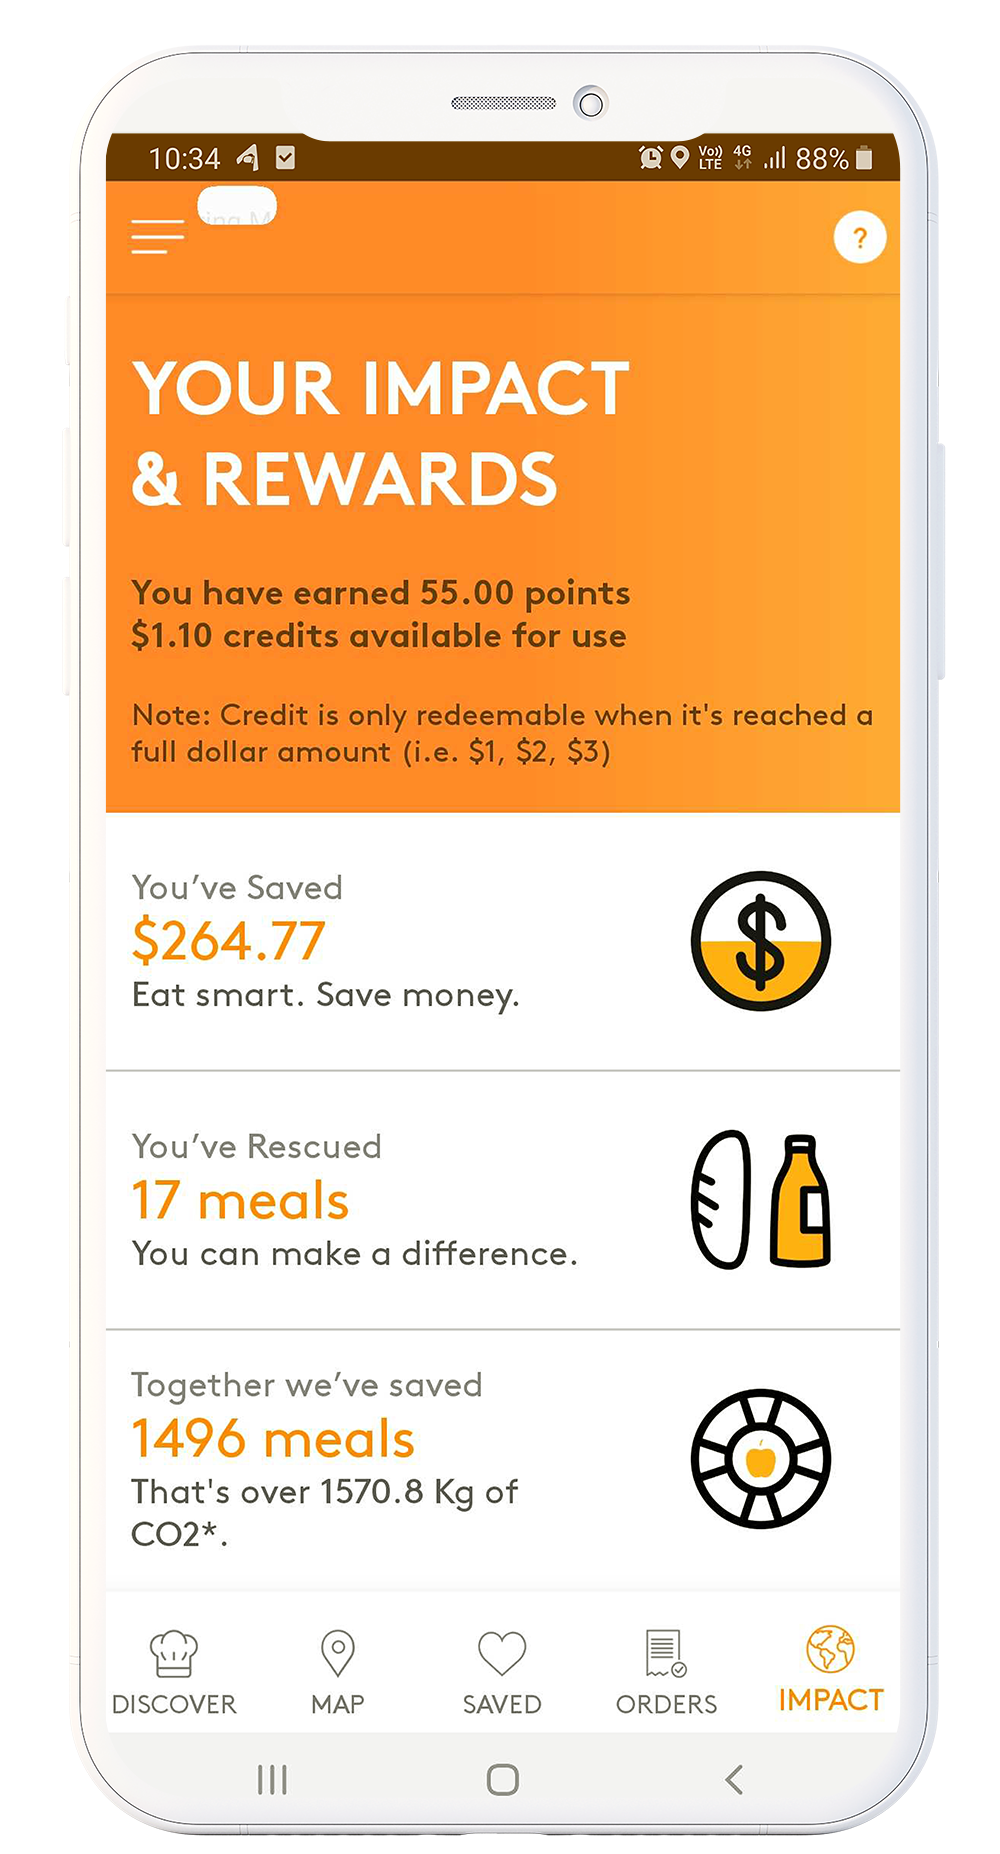 An app mockup showing the app's Rewards page.